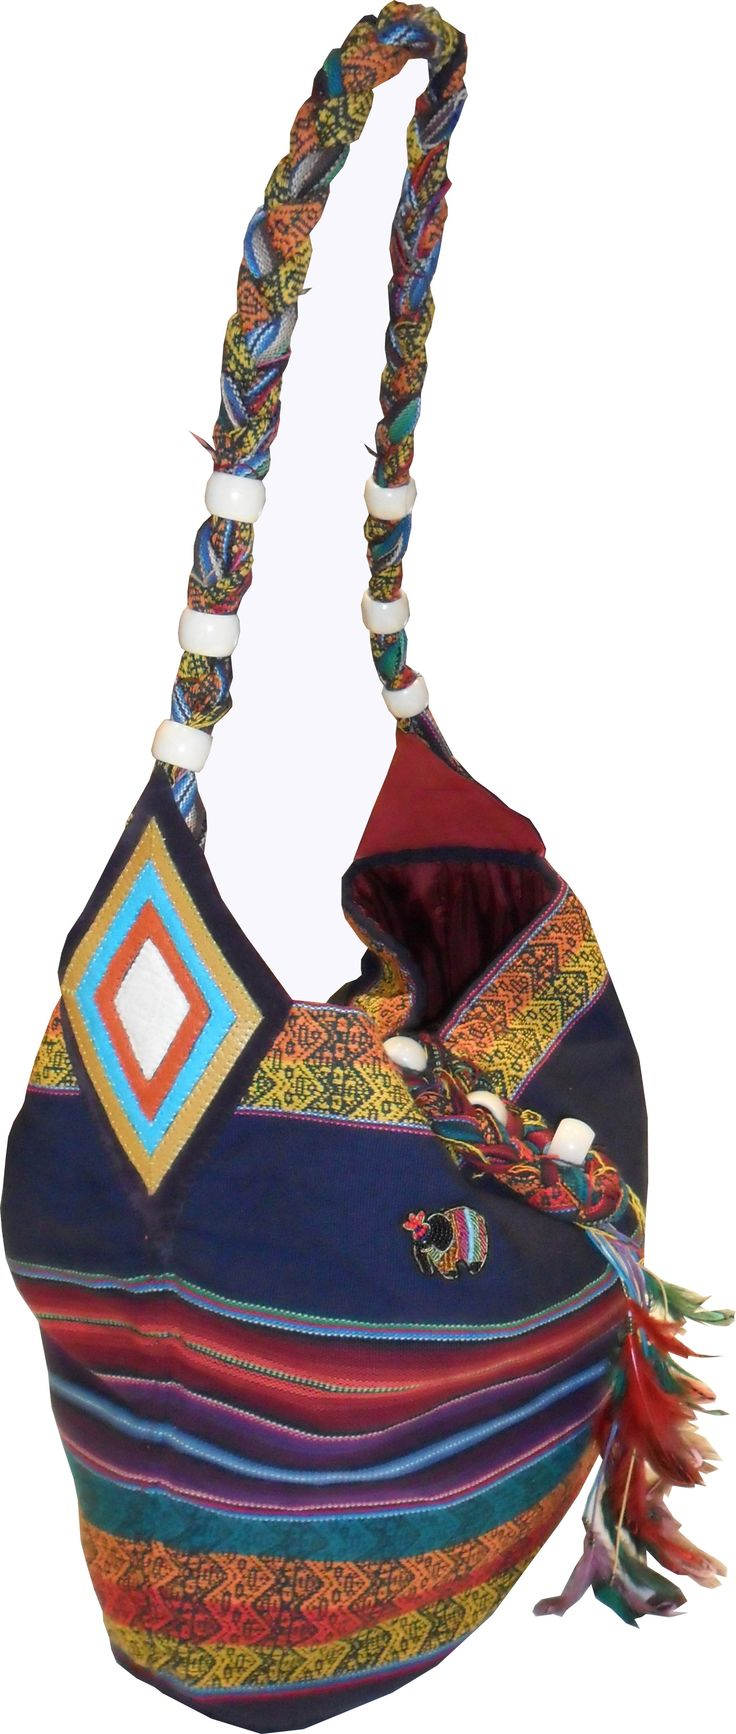 N.AFRICA, Shoulder bag from handmade cotton jacquard decorated with leather detail and feathers.